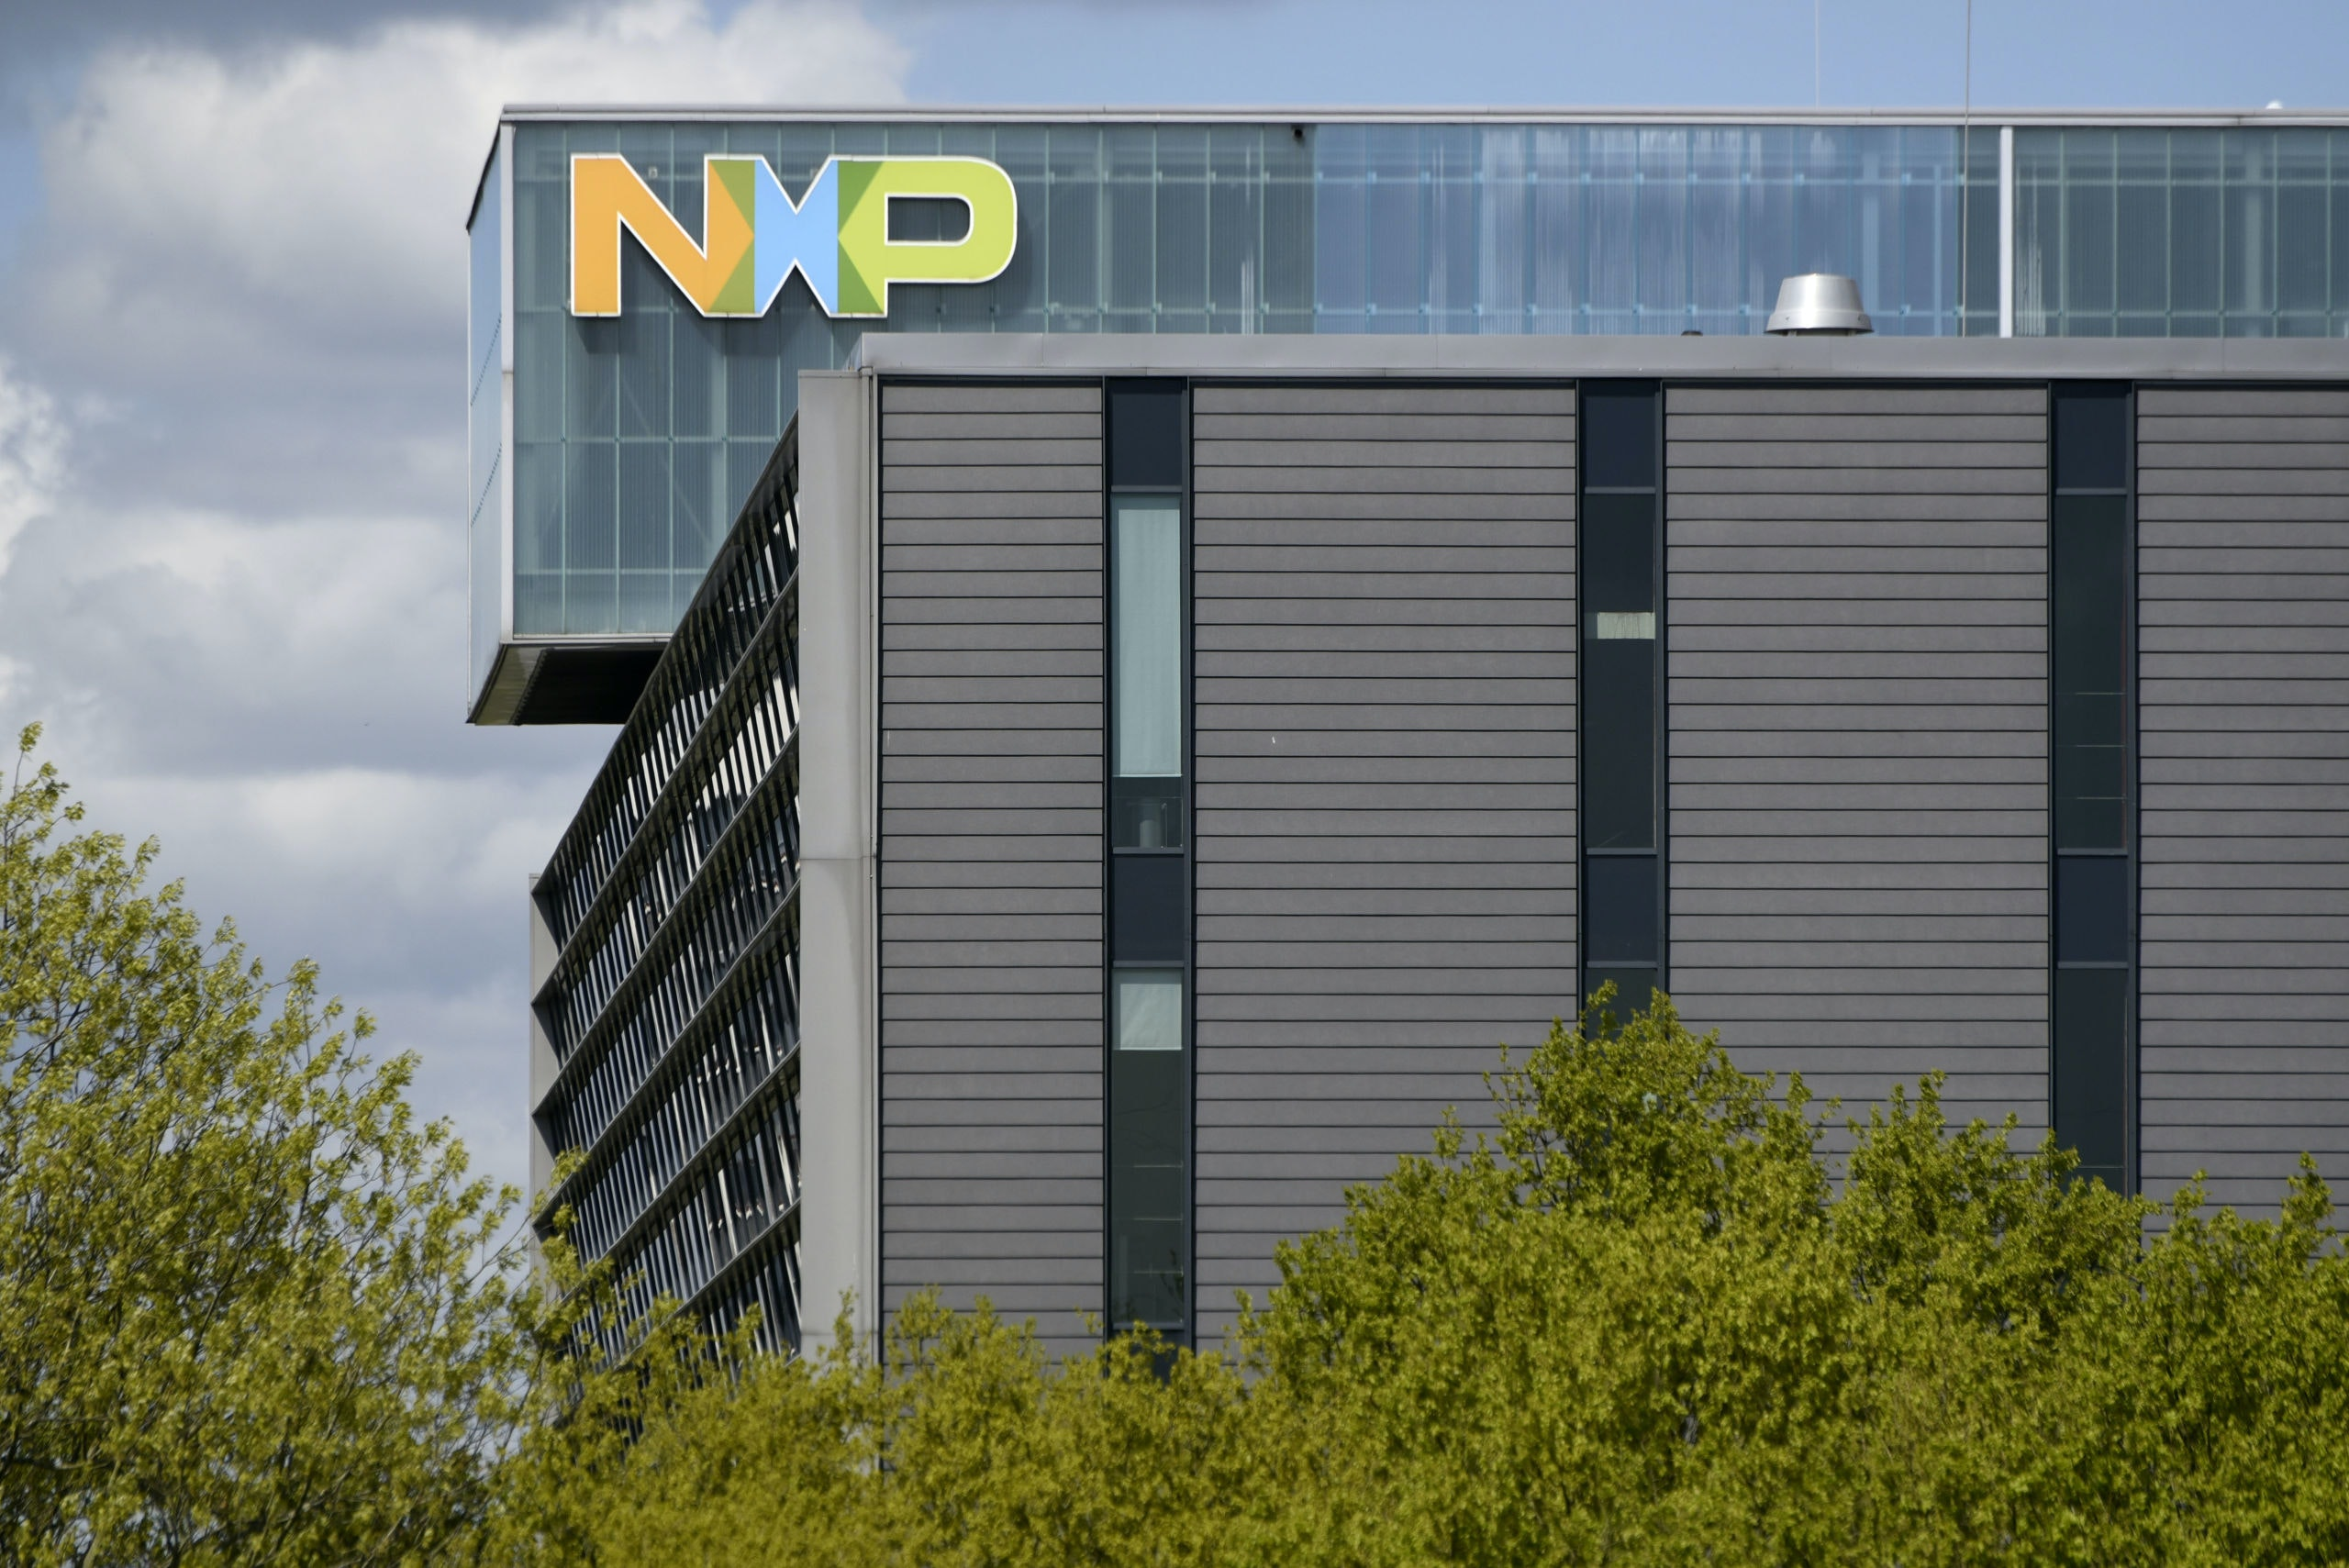 Nederland, Eindhoven, 29 april 2015,  NXP, vestiging in Eindhoven op de High Tech Campus.  Eindhovens technologiecentrum. technology center . Dutch chip manufacterer NXP former division of Philips.  Nederlandse chipfabrikant NXP. Chipmaker Chip manufacturers NXP is de voormalige chipdivisie van elektronicaconcern Philips. NXP Semiconductors is a Dutch semiconductor manufacturer. Foto; Peter Hilz / HH